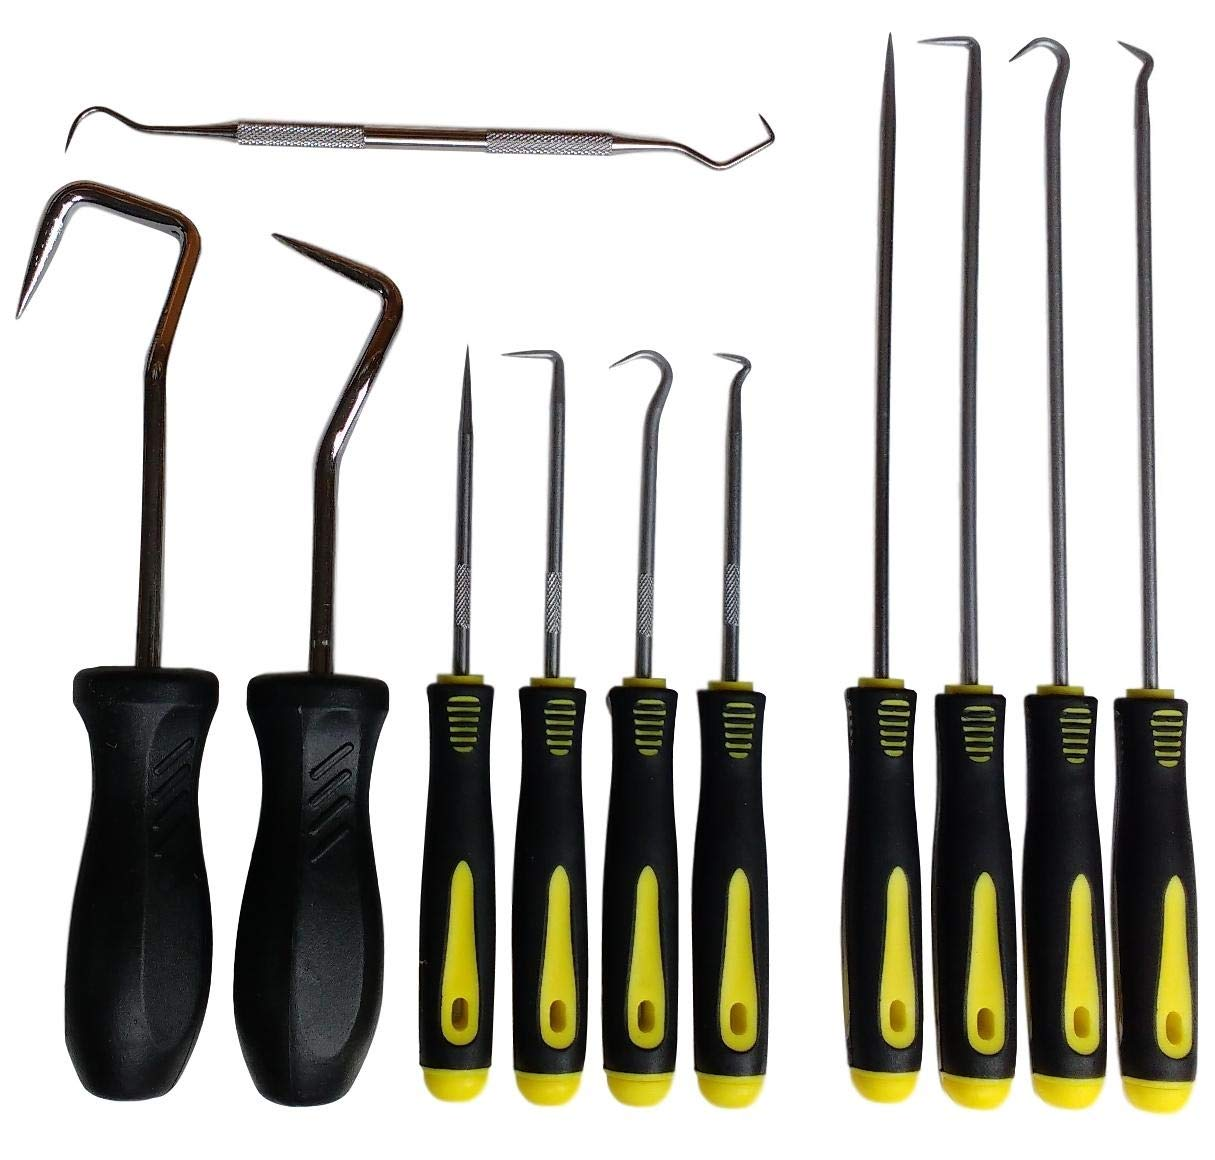 11 Pc. Hook & Pick Set, 4 Long + 4 Short + 2 Big + 1 O-rings Tool. Radiator Hoses, Grab, Retrieve, etc.